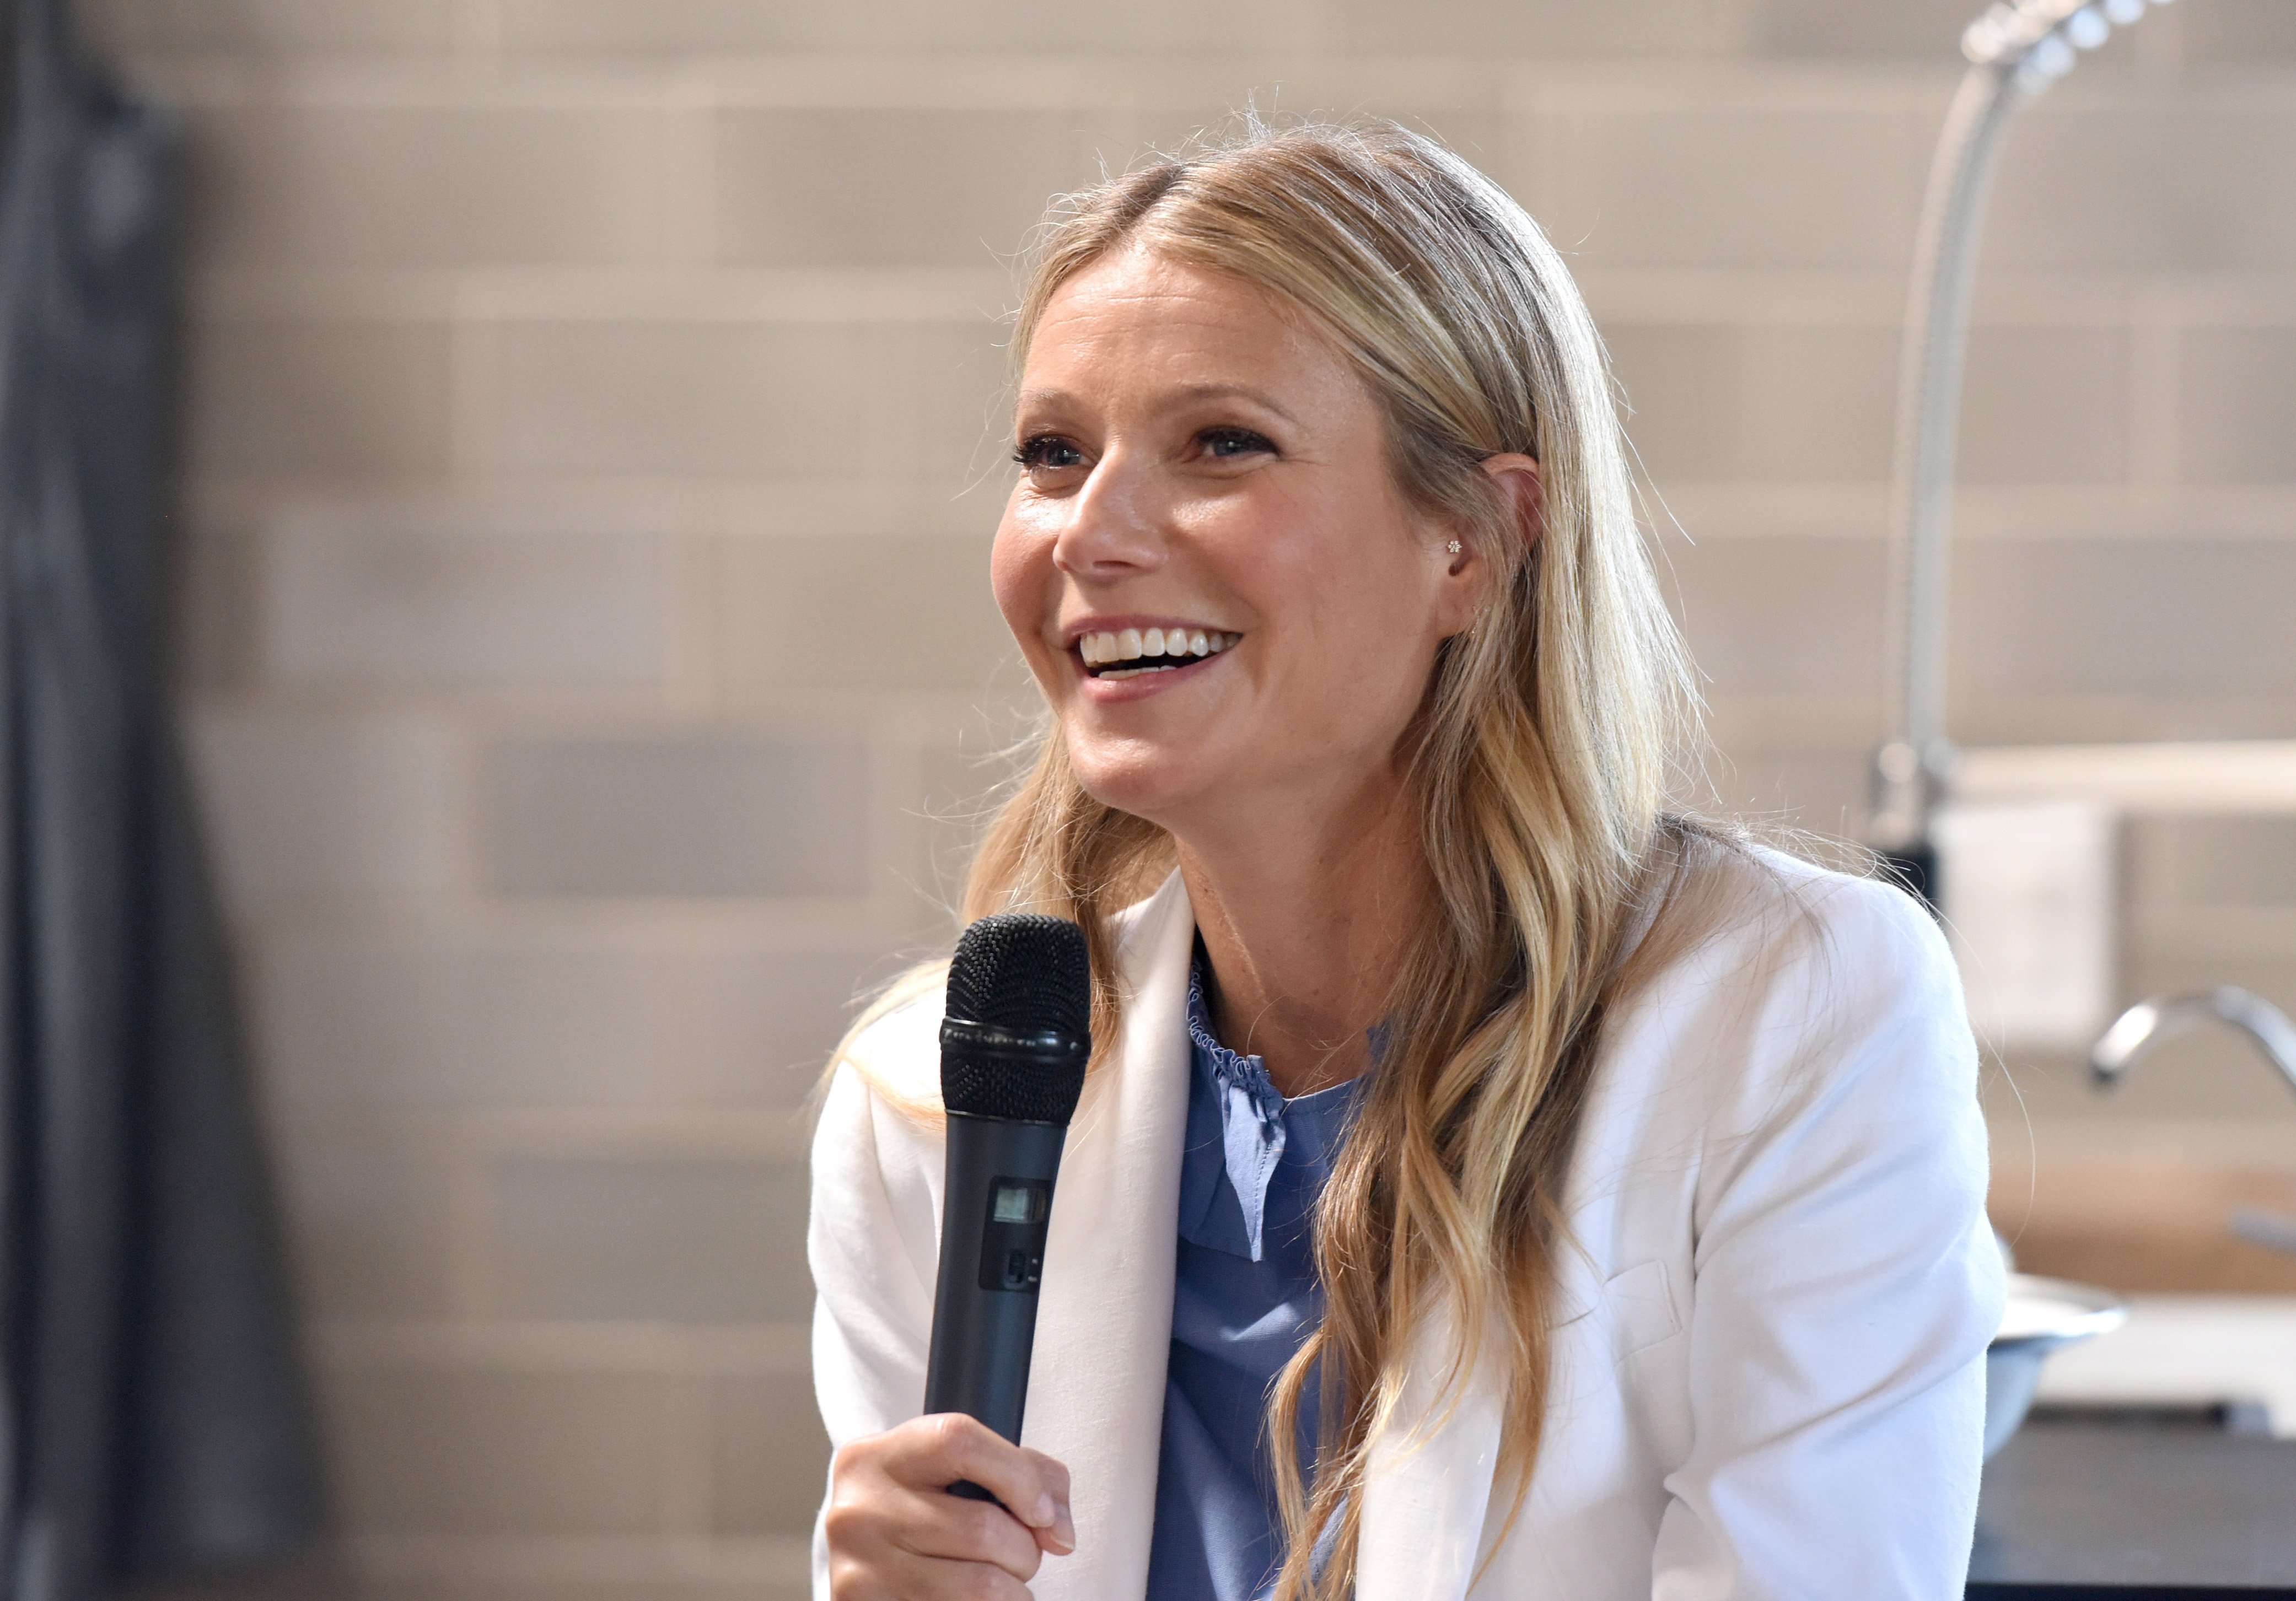 Image Credits: Getty Images / Vivien Killilea | Gwyneth Paltrow speaks at Fast Company with Gwyneth Paltrow and Goop at FC/LA: A Meeting Of The Most Creative Minds on May 16, 2017 in Santa Monica, California.